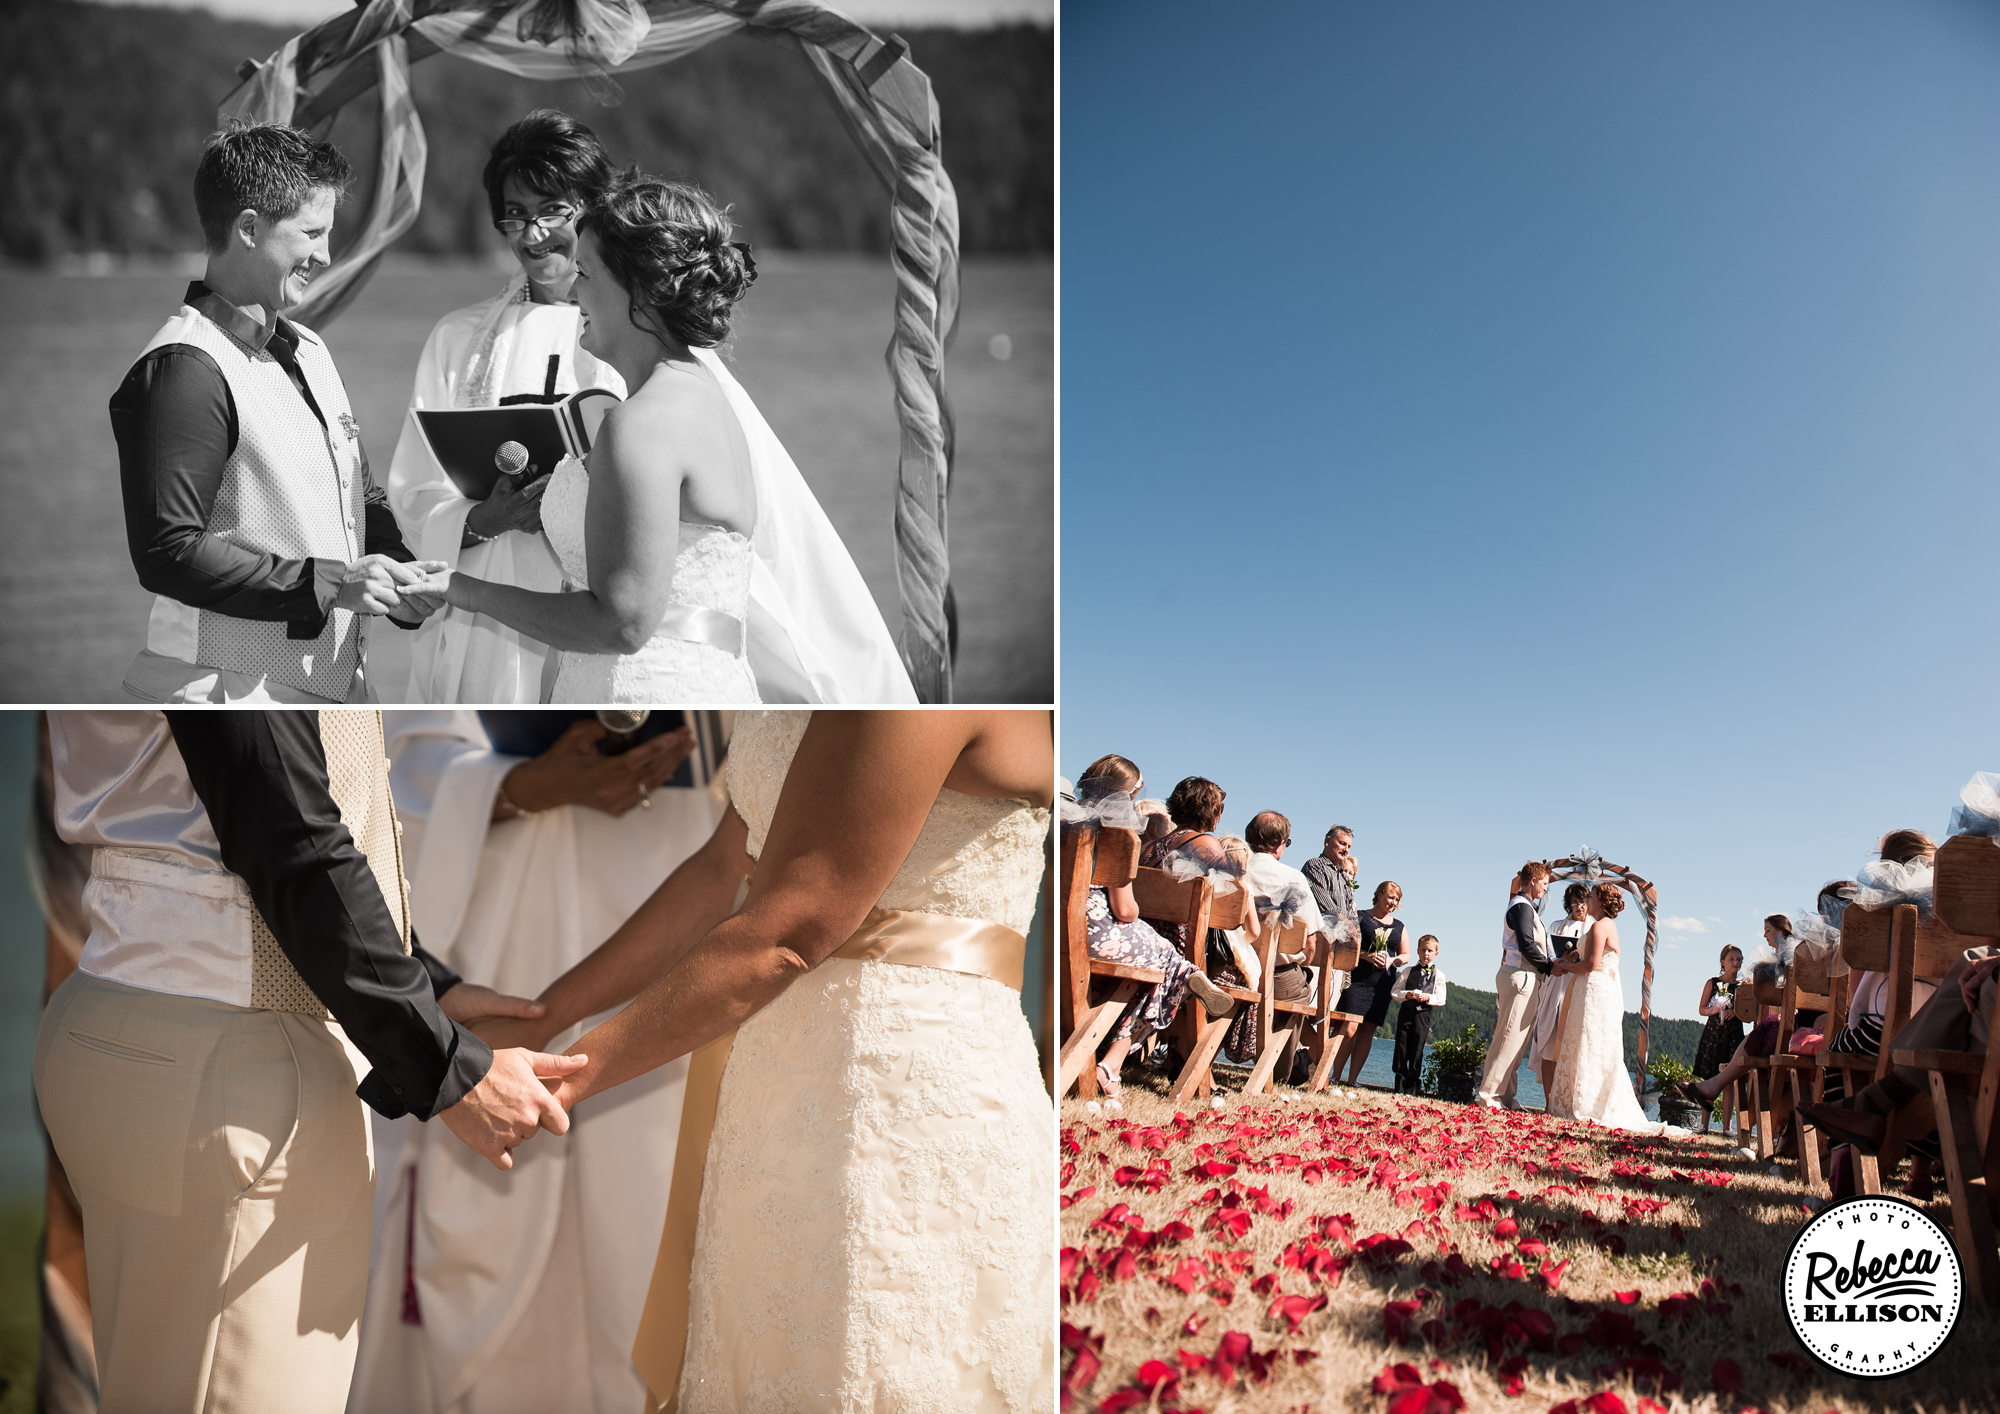 Same Sex beachfront wedding featuring a belted white wedding dress, flower petals in the sand and sunshine photographed by Seattle wedding photographer Rebecca Ellison